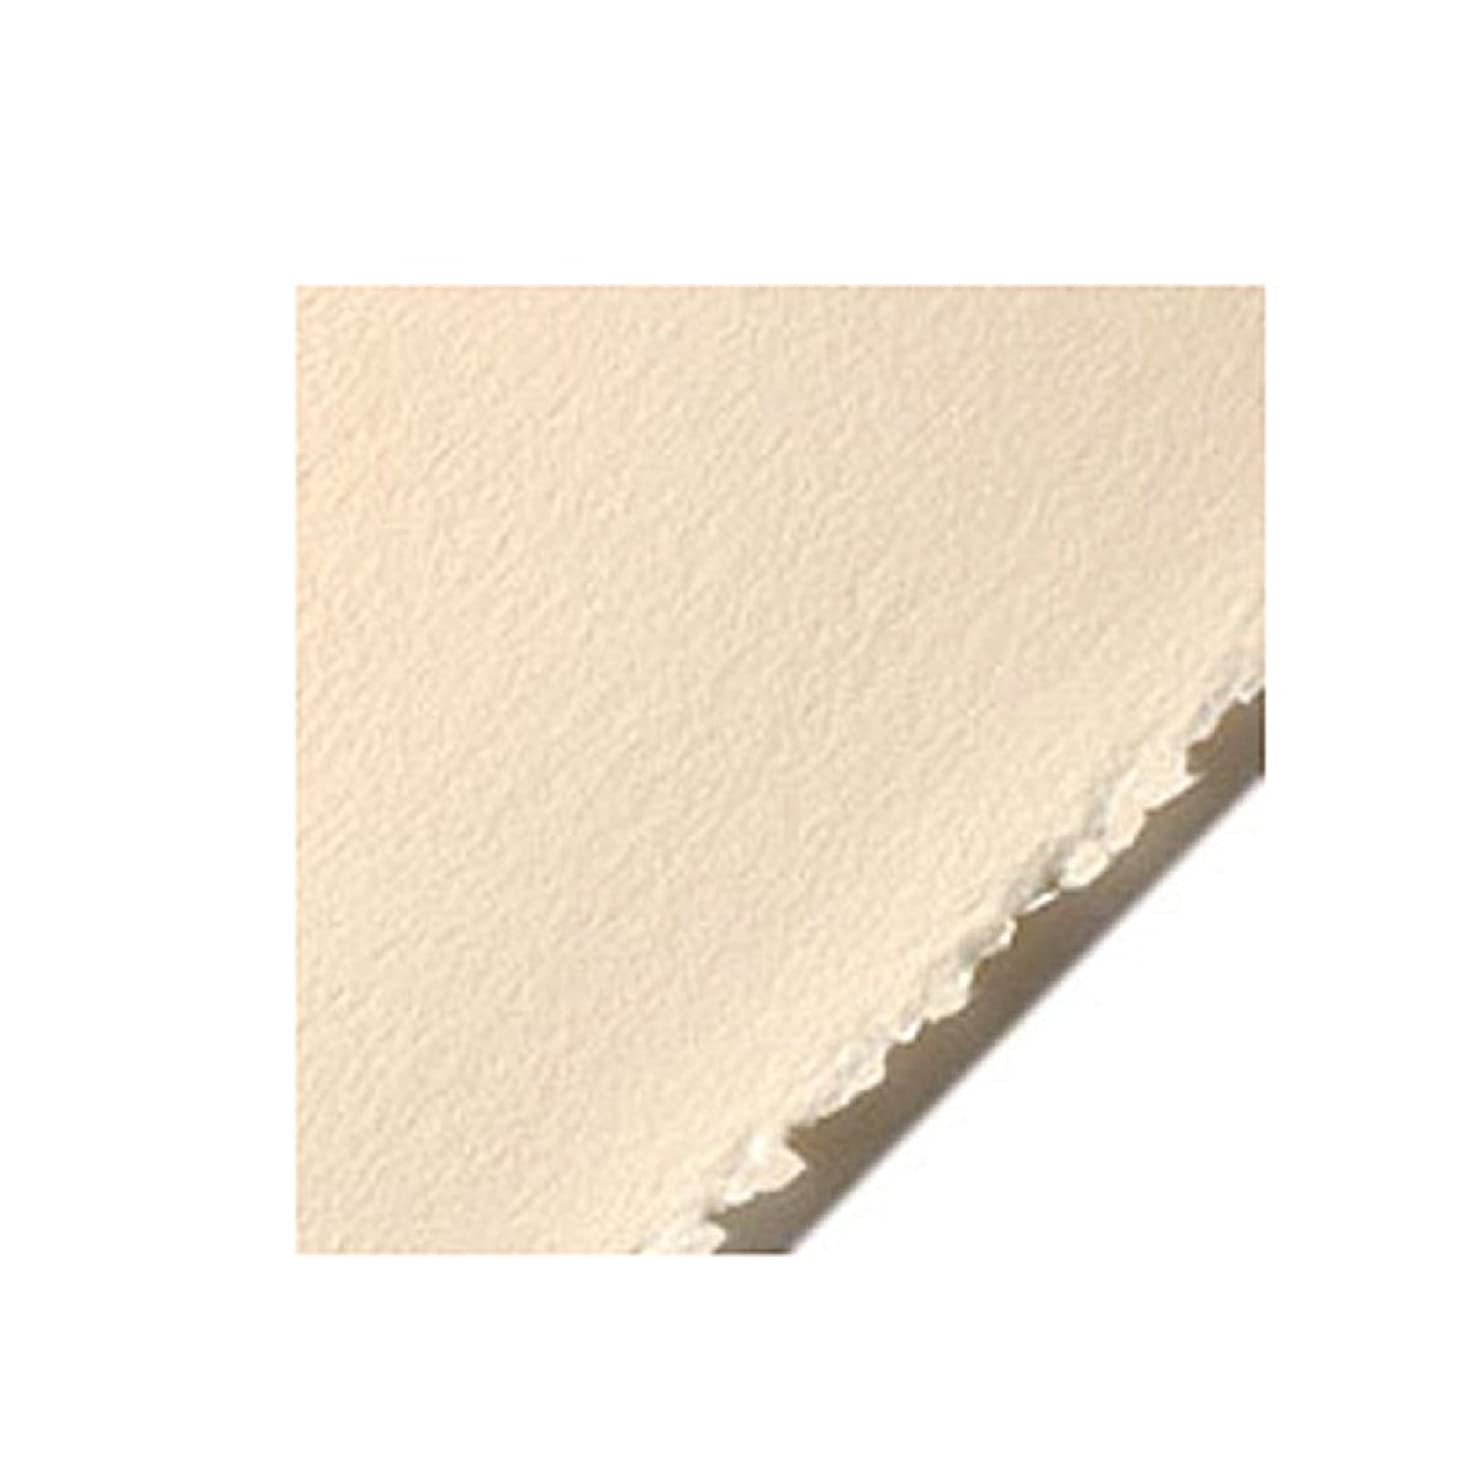 Stonehenge Legion Paper, Cotton Deckle Edge Sheets, 22 X 30 inches, Cream, Pack of 10 (F05-STN250CRH10)